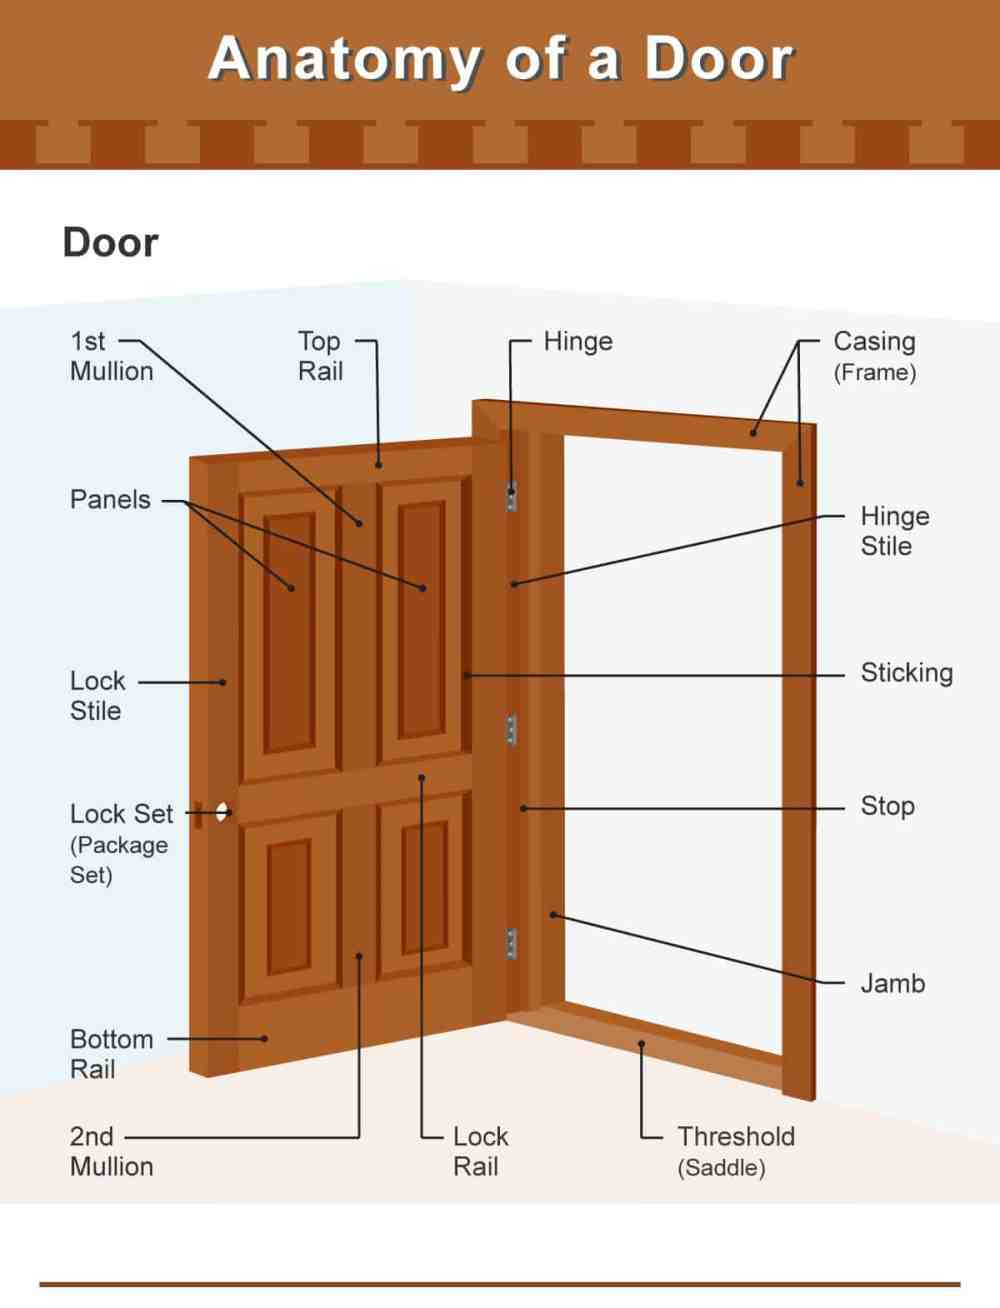 medium resolution of diagram illustrating the different parts of a door and door frame